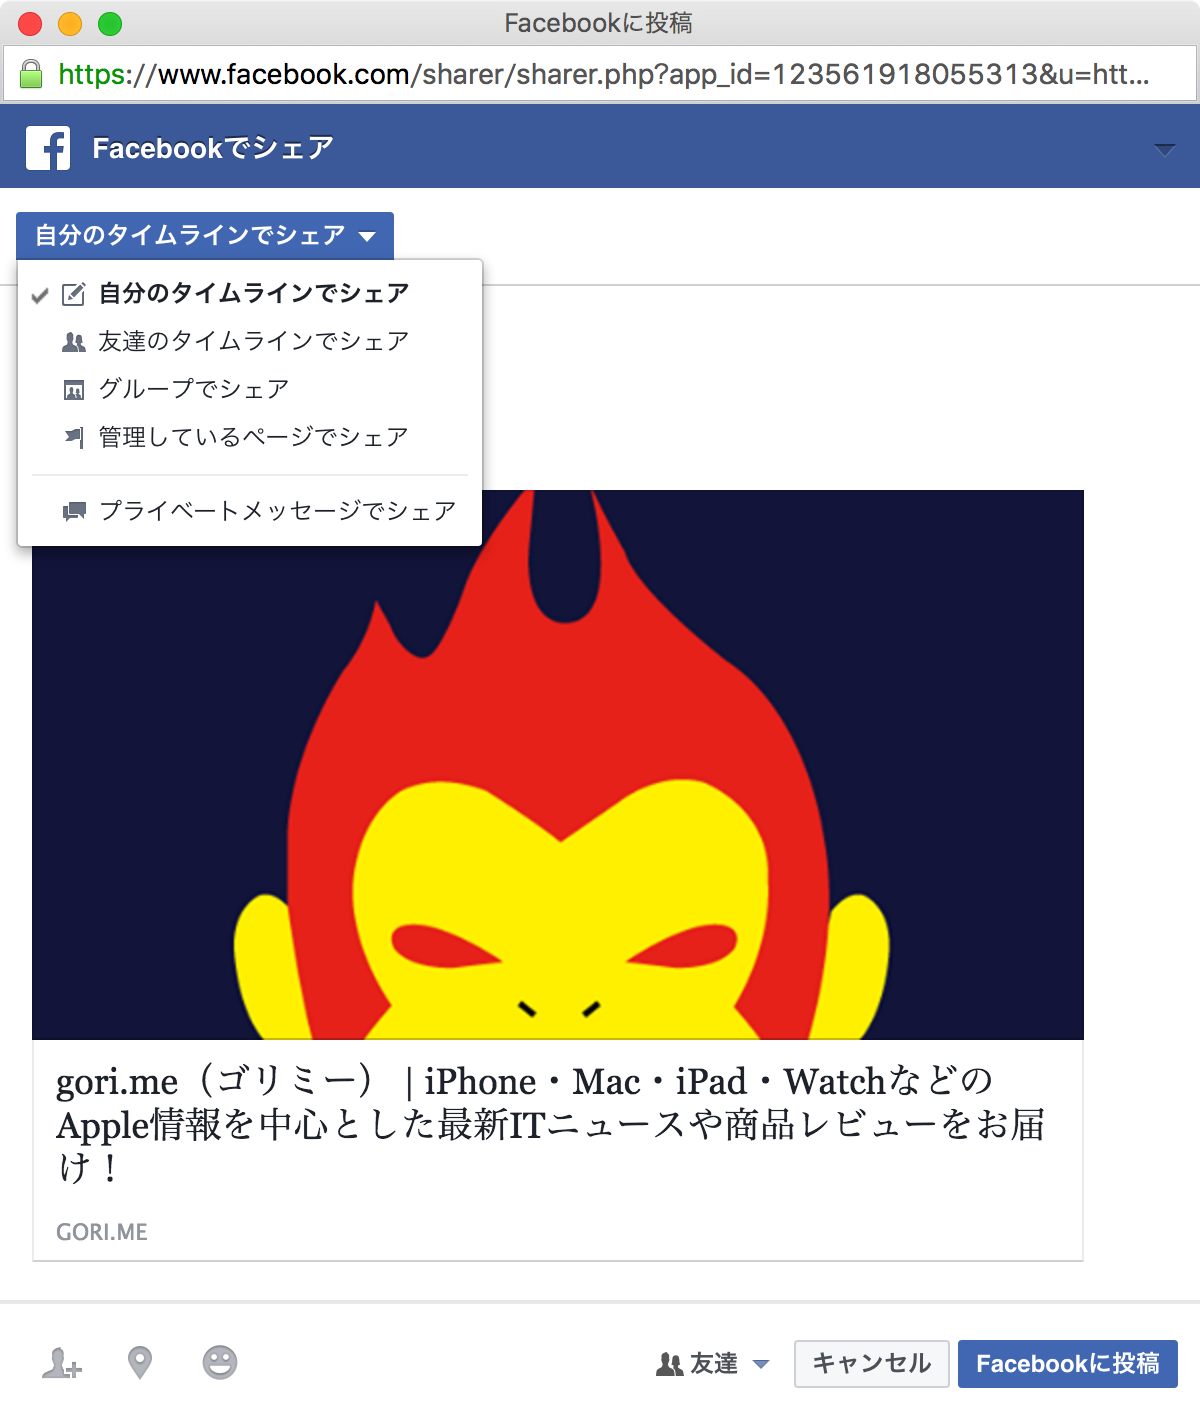 Facebook-New-Share-Popup-2